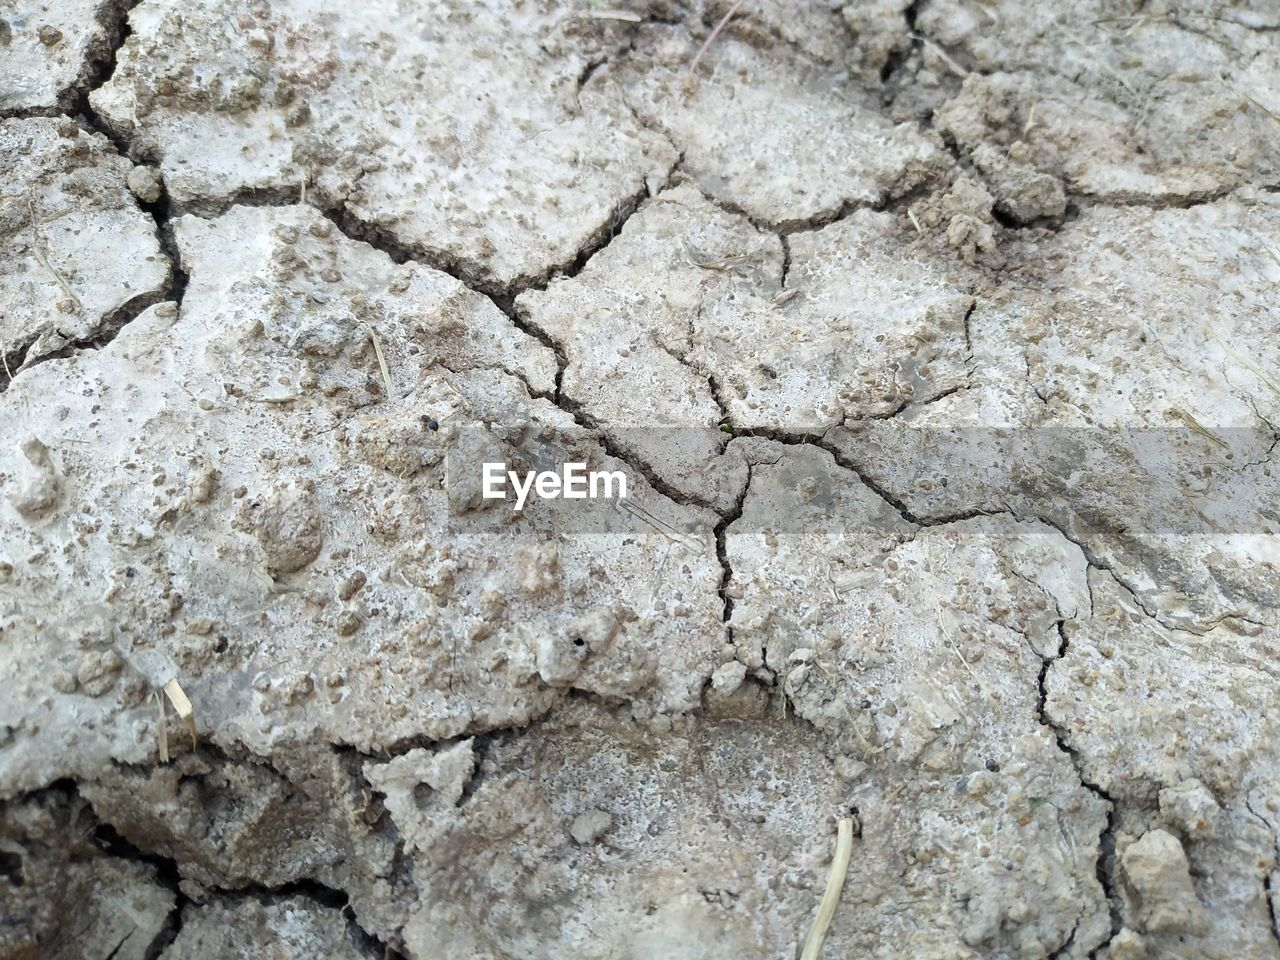 textured, full frame, backgrounds, cracked, dry, no people, pattern, close-up, nature, day, drought, arid climate, climate, rough, environment, scenics - nature, solid, outdoors, geology, mud, textured effect